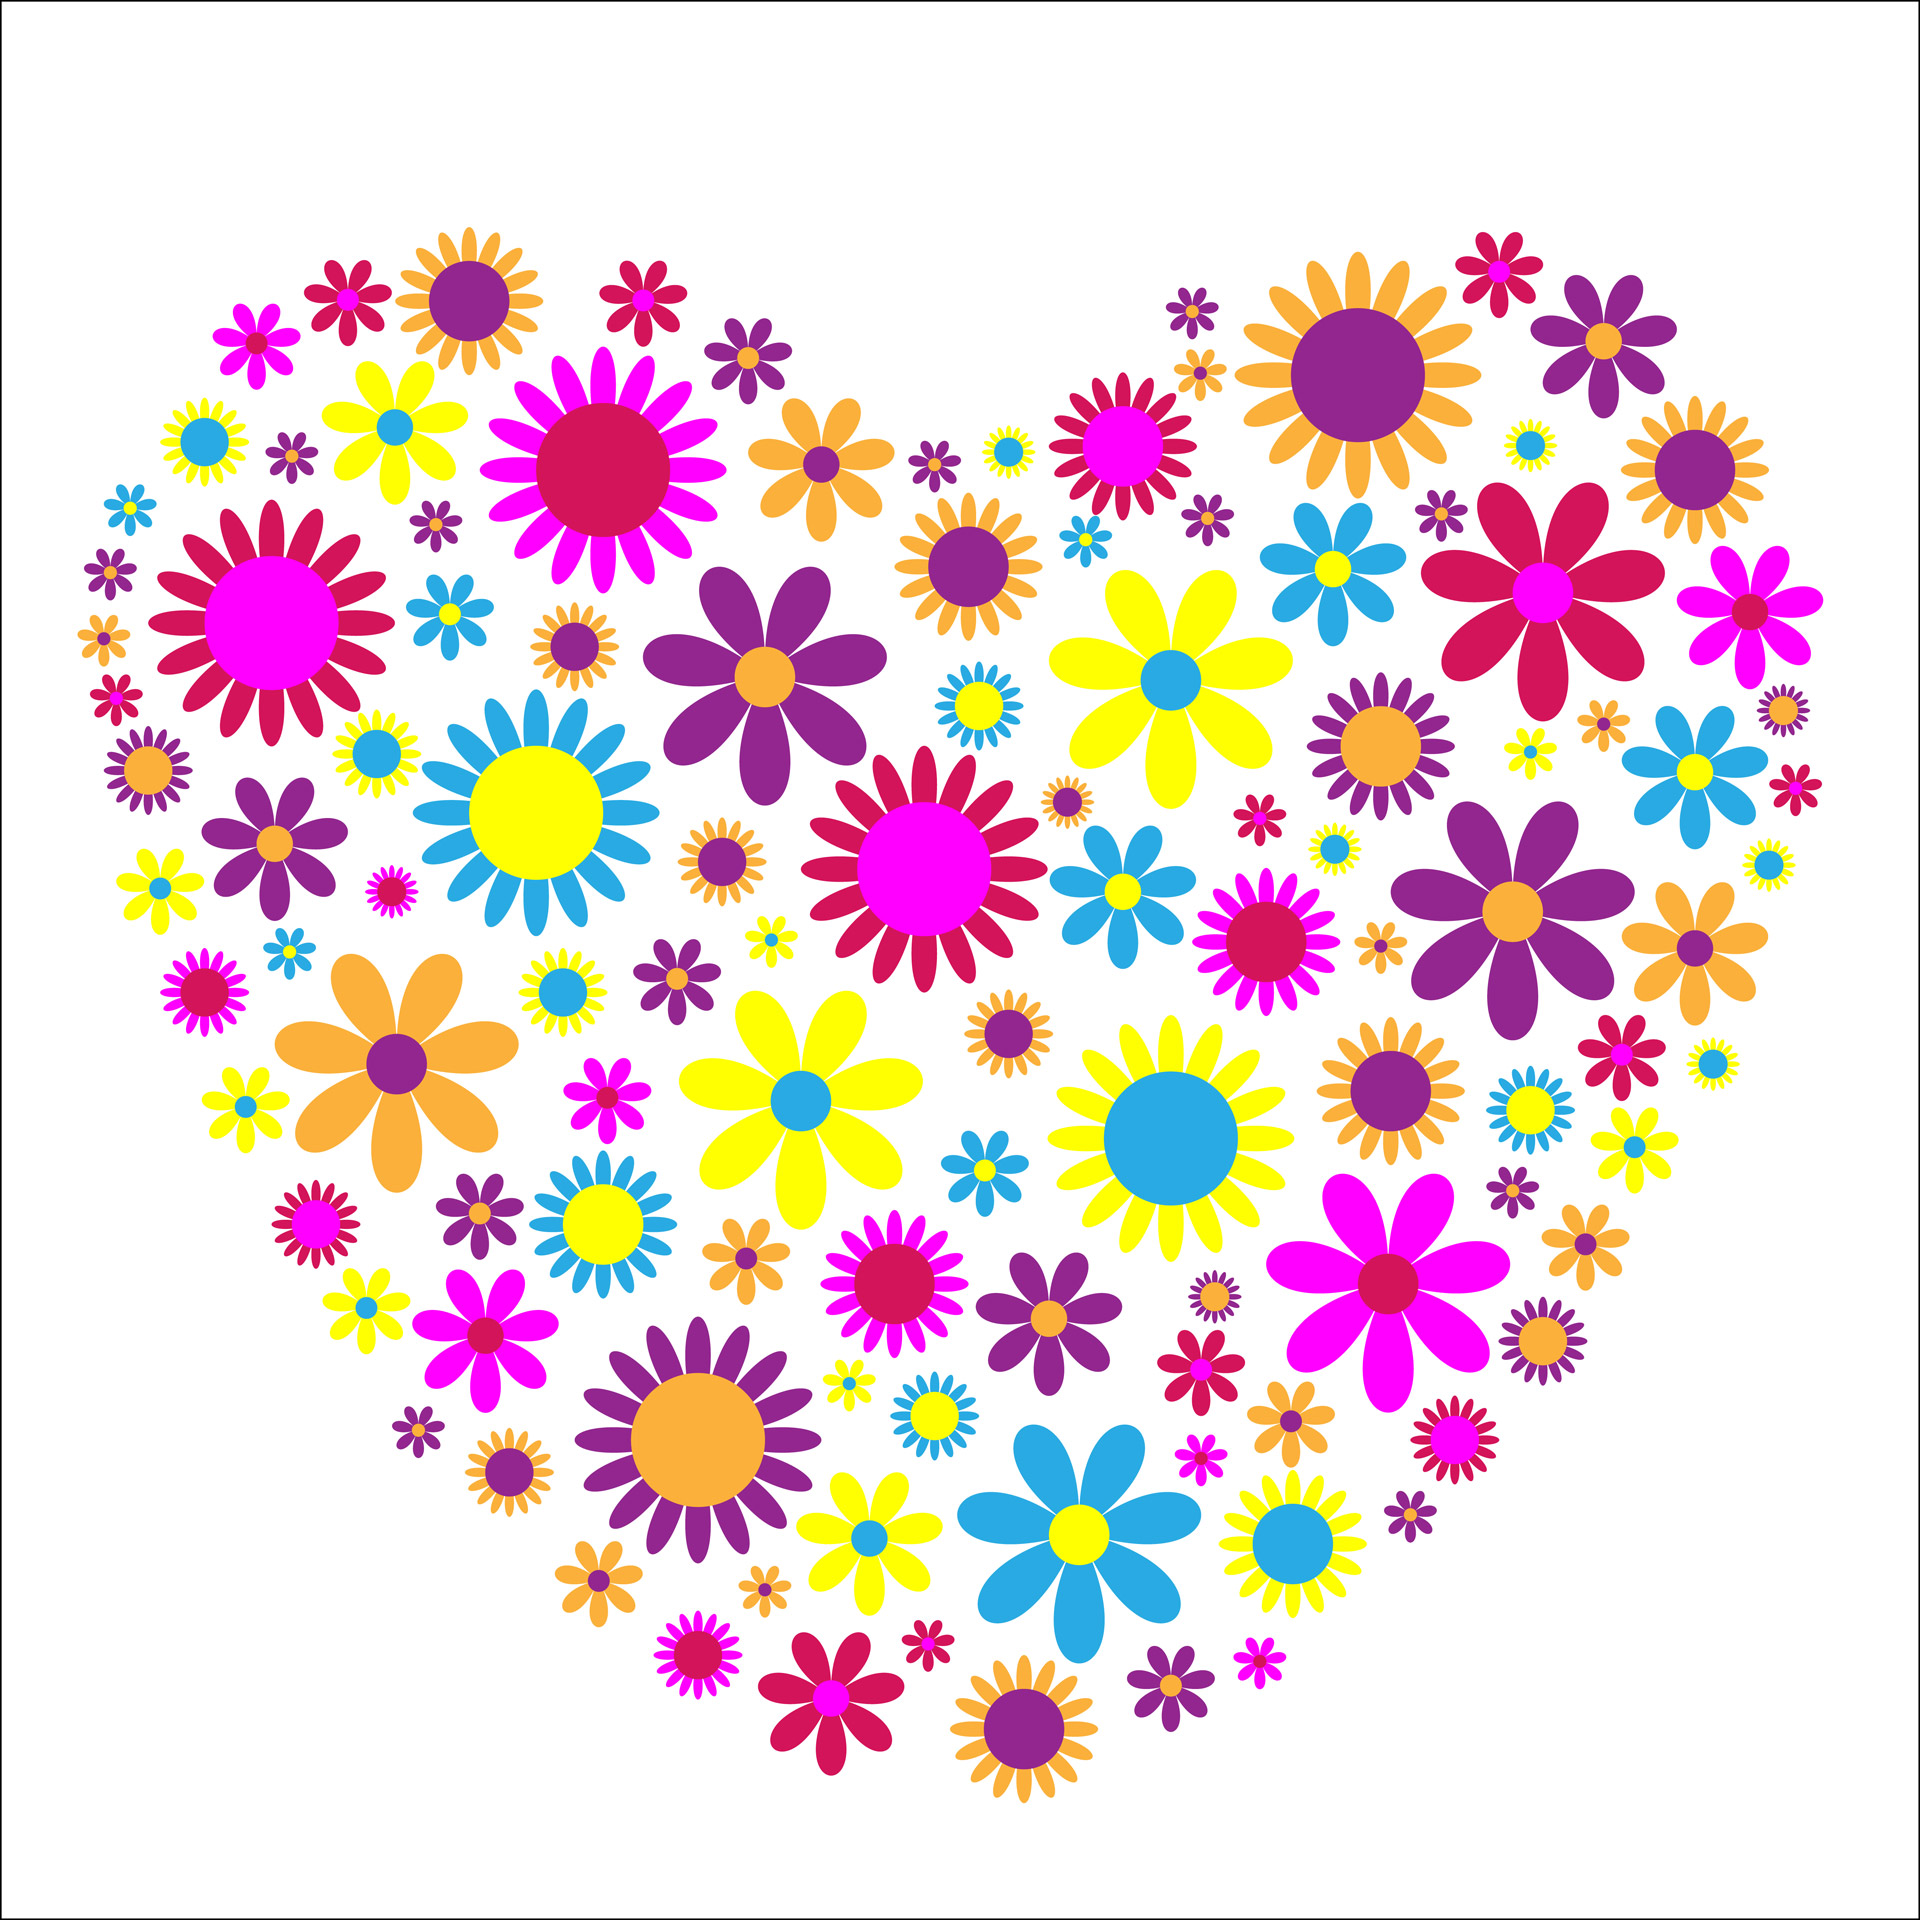 Floral heartfloralflowersheartcolorful free.